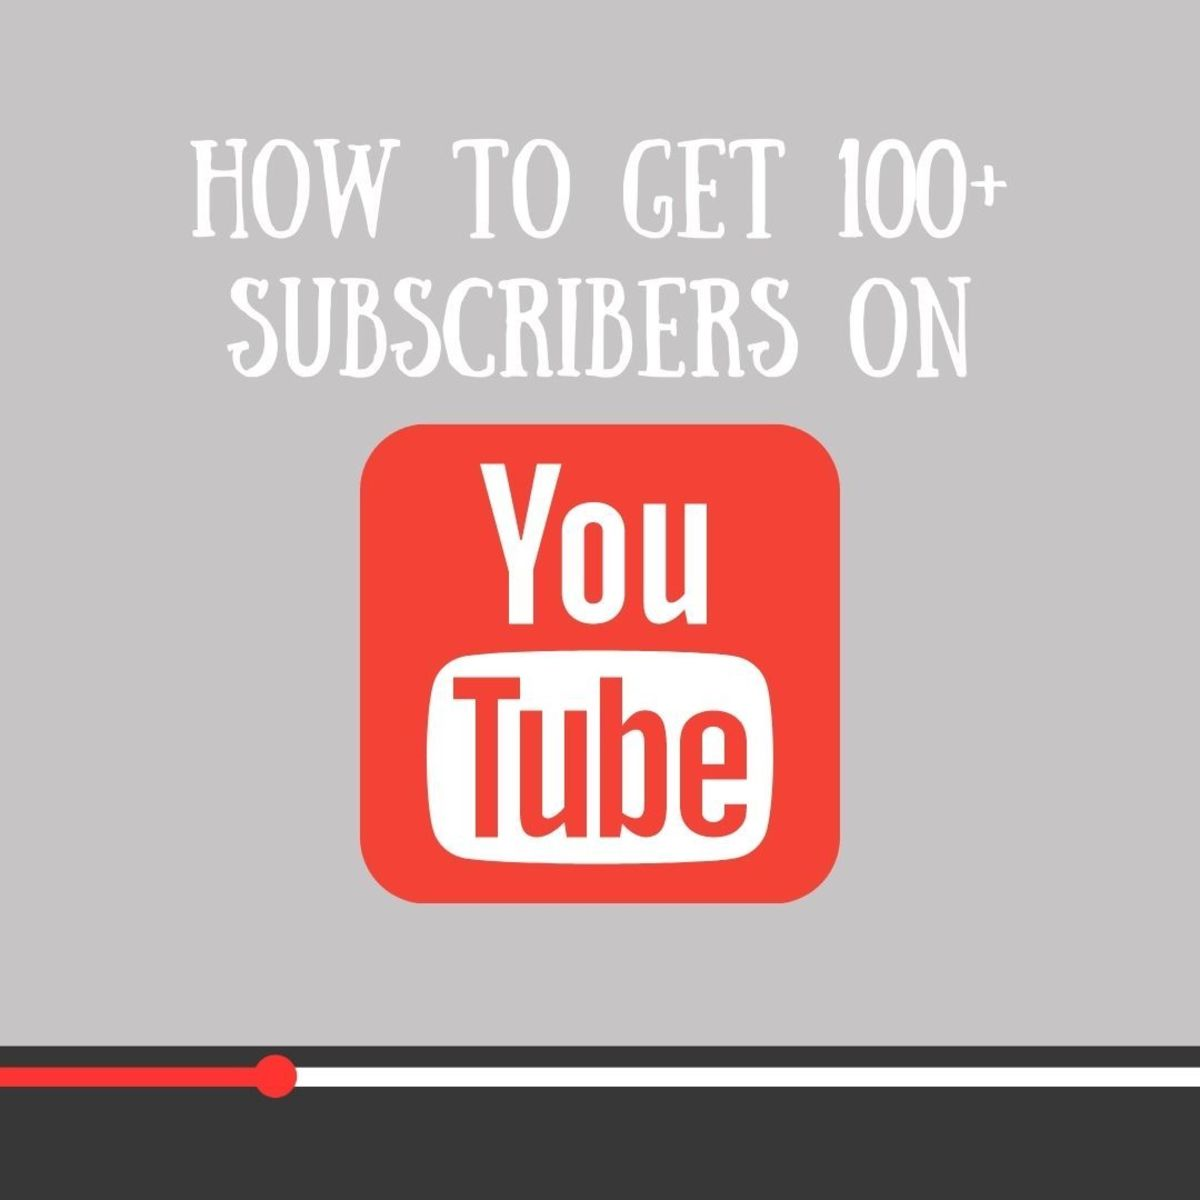 Tips and tricks for getting your first 100+ subscribers on YouTube